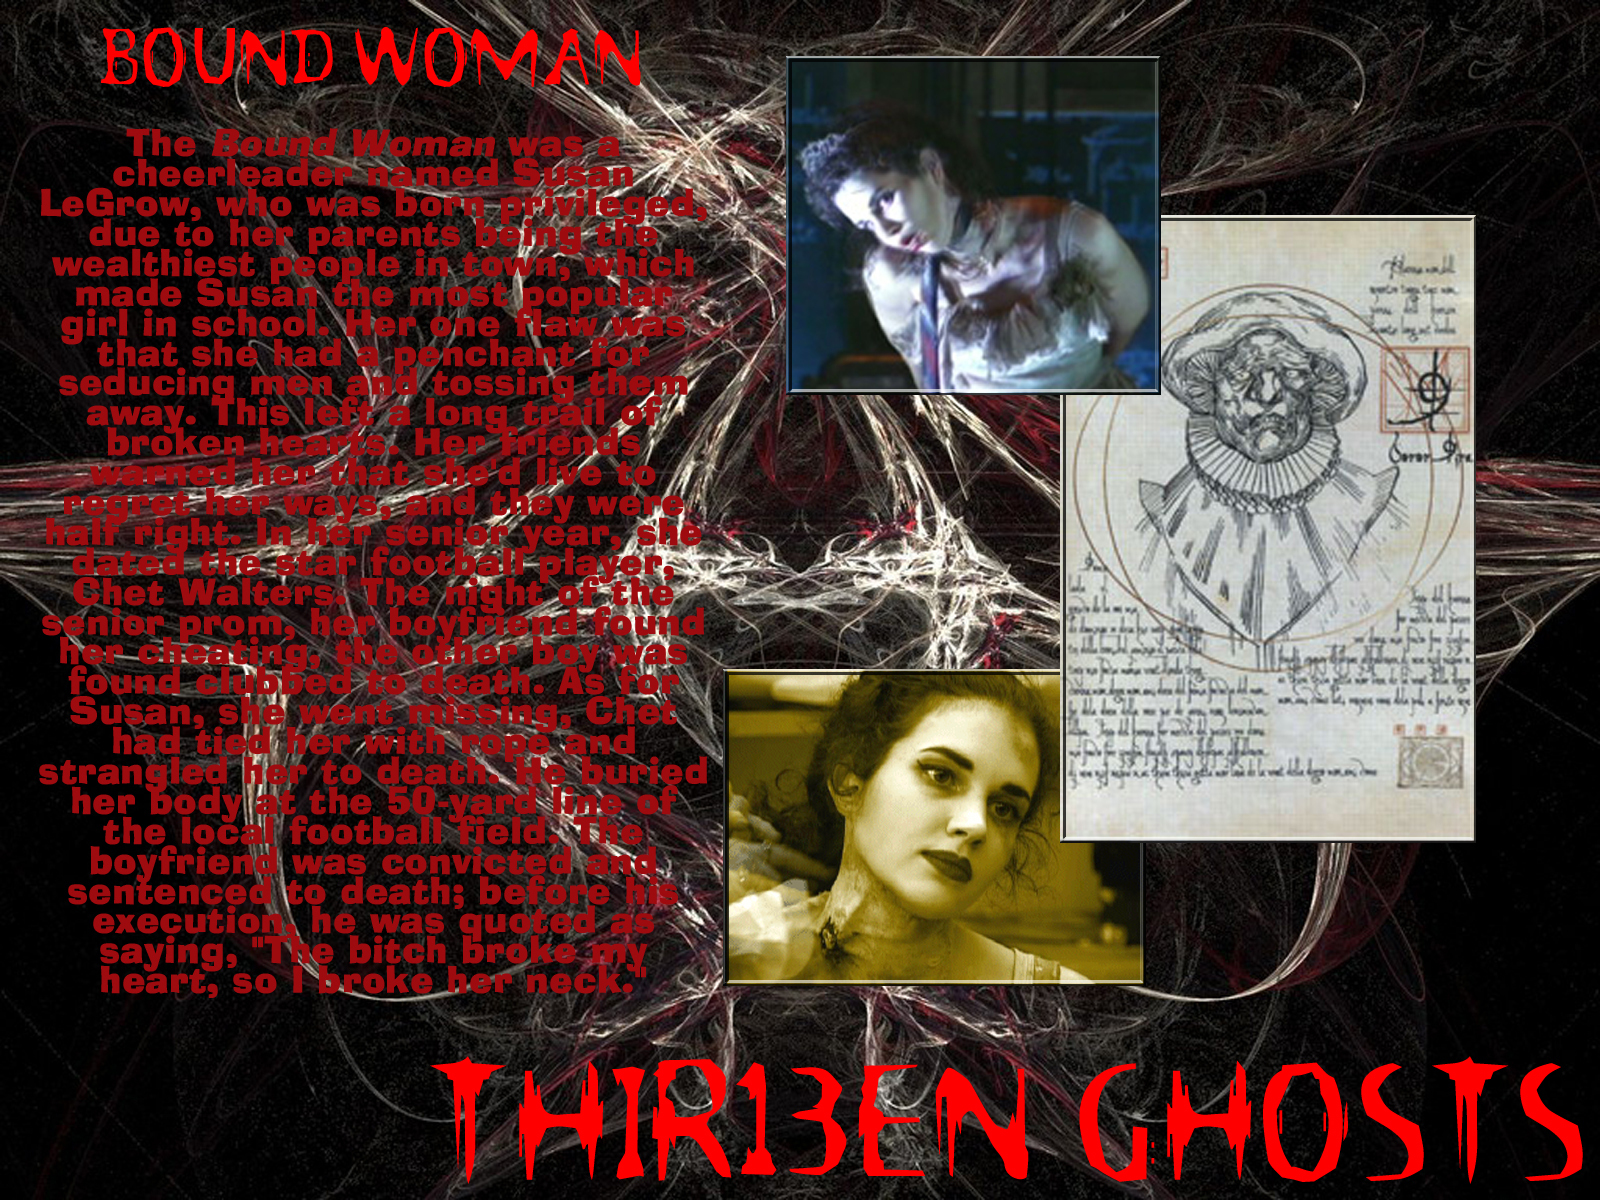 Thirteen ghosts naked women sexy images